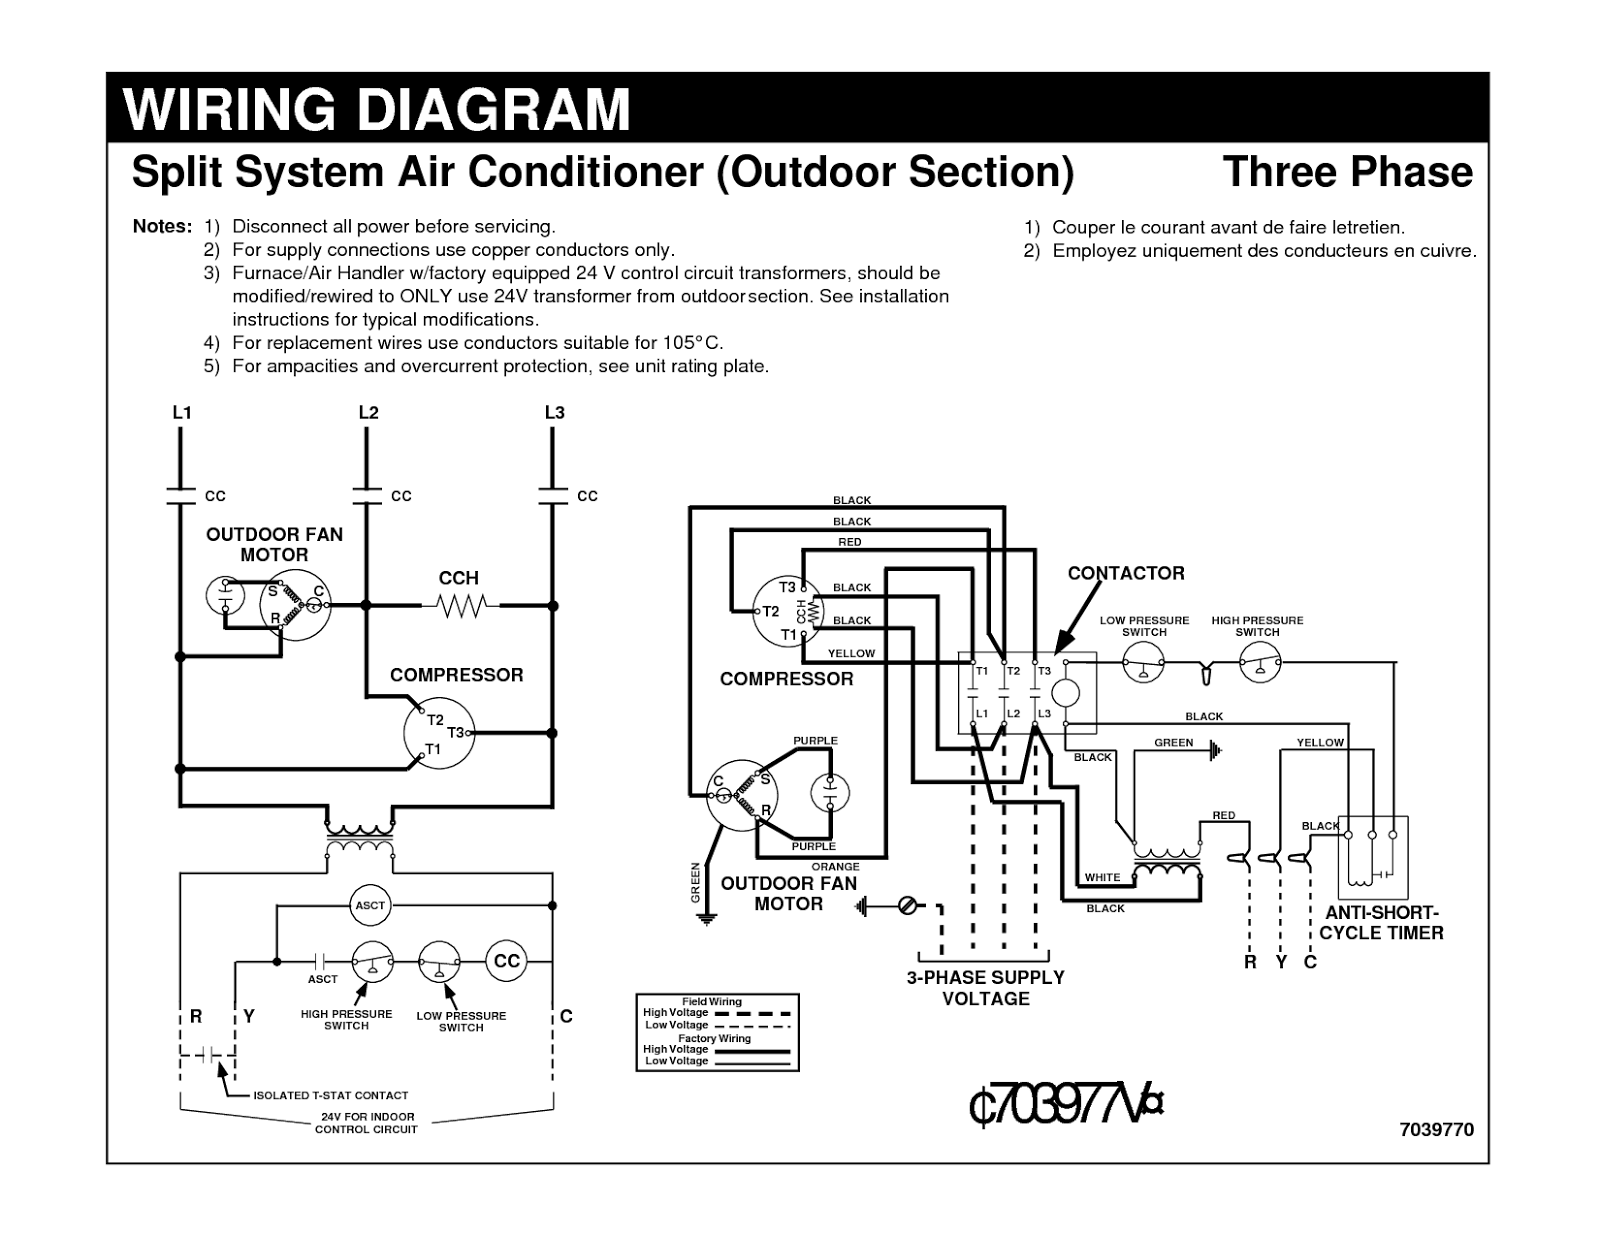 Basic Ac Wiring Diagrams - Www.n-england-joinery.uk • on simple control diagrams, simple alternator diagrams, simple assembly, simple brochures, simple plumbing diagrams, simple electrical system, simple transmission, basic electrical schematic diagrams, simple block diagrams, simple index, simple cooling system, simple gearbox, simple body, simple flow charts, communication diagrams, relay diagrams, air compressor piping layout diagrams, simple electrical schematics, simple floor plans, simple sketches,